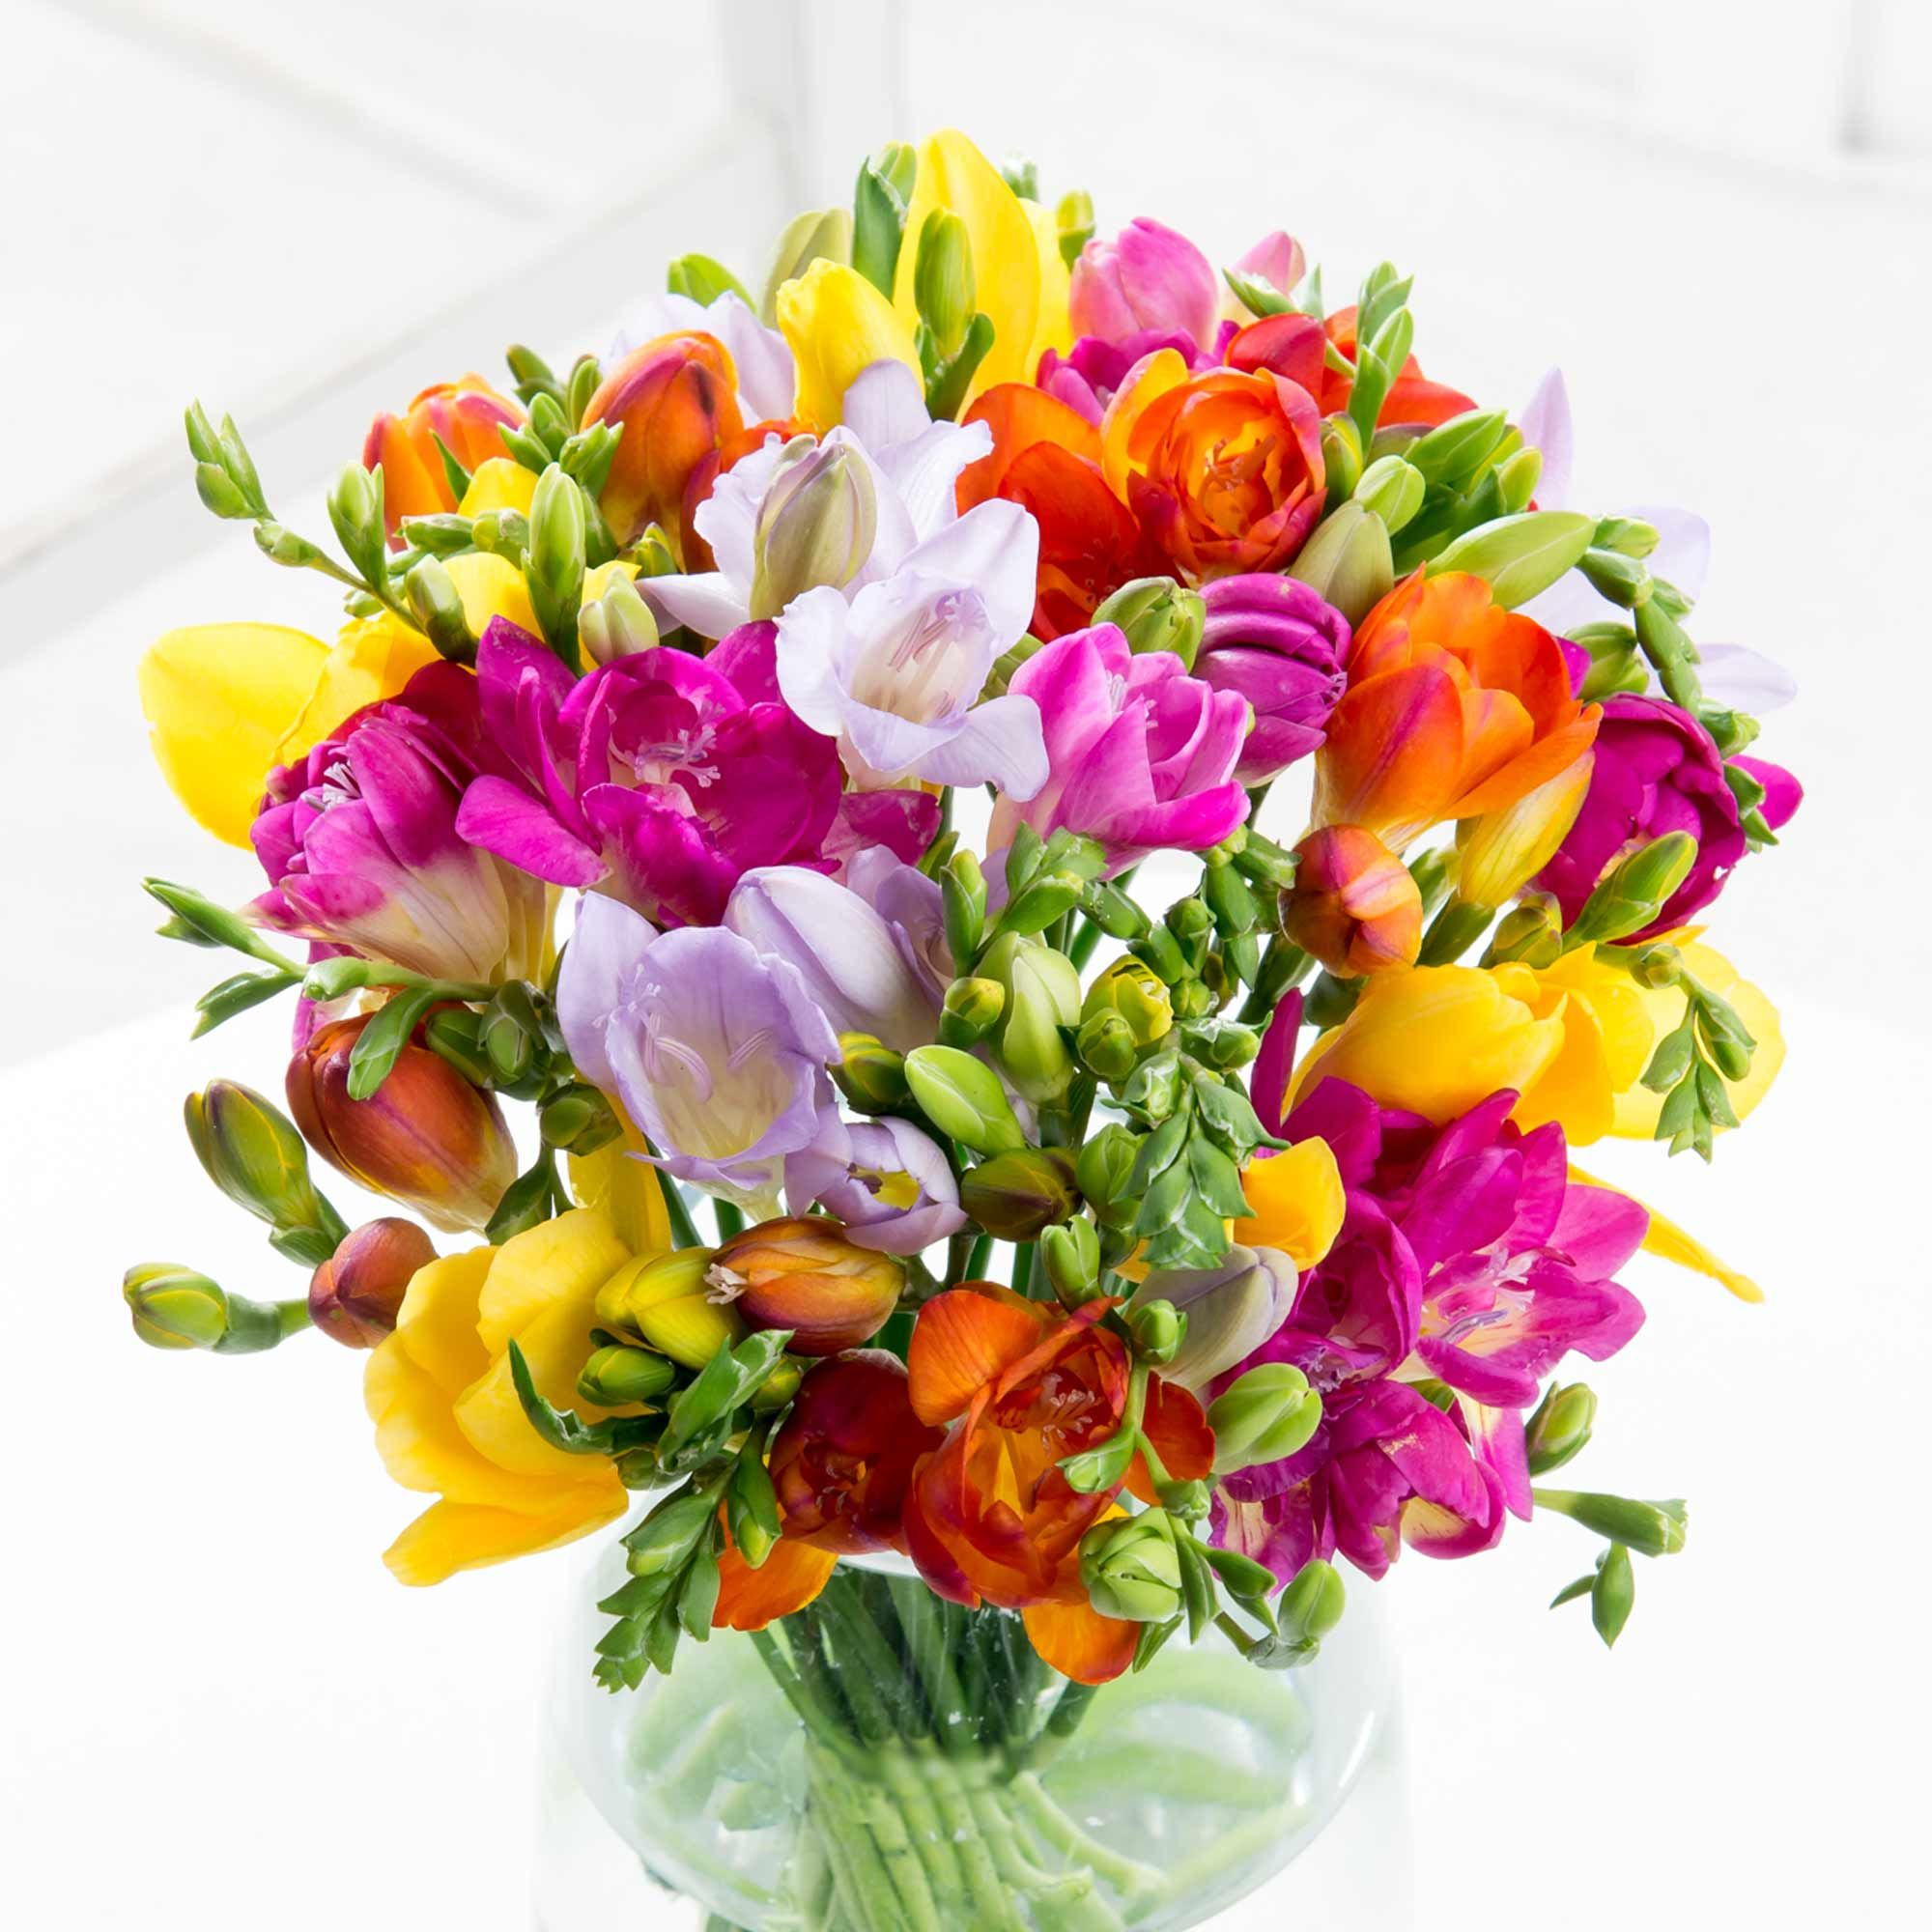 Keep it simple with this one flower bouquet of Simply